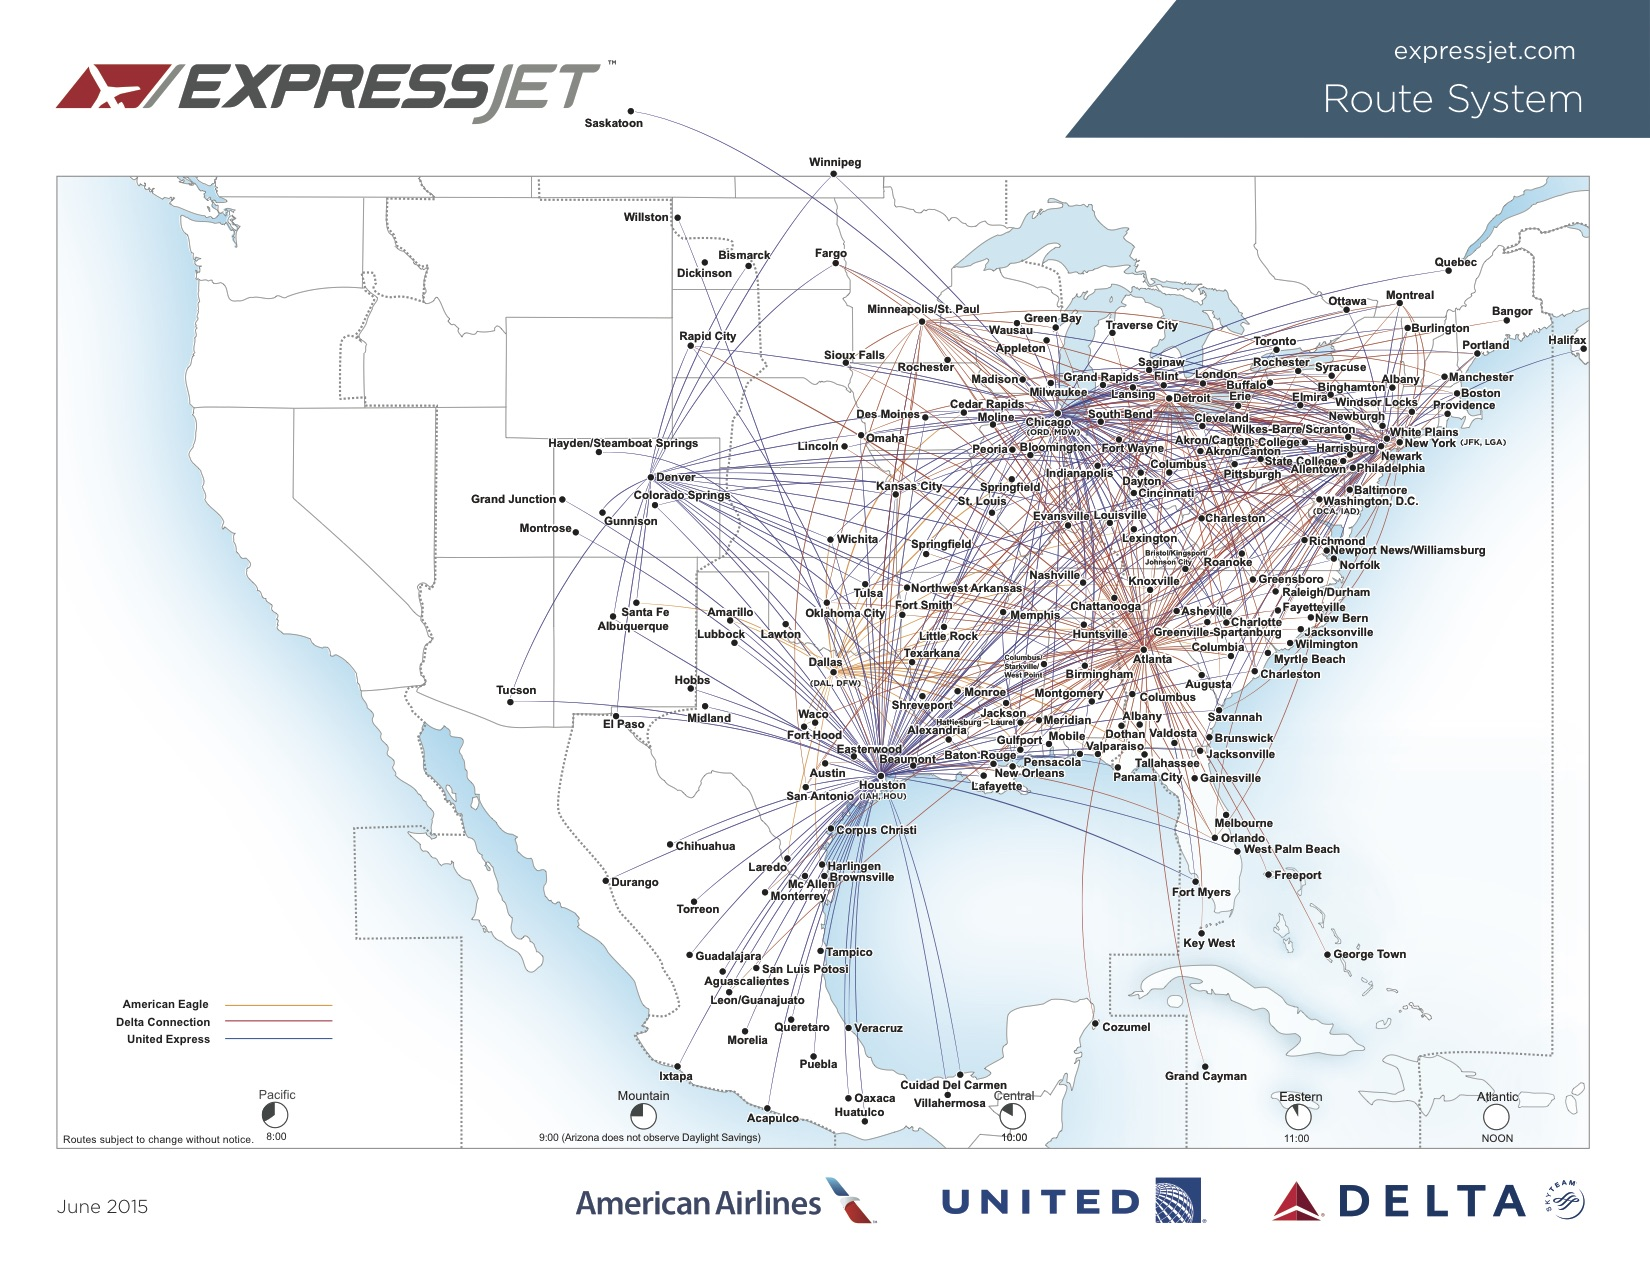 map for the full size view expressjet 72015 route